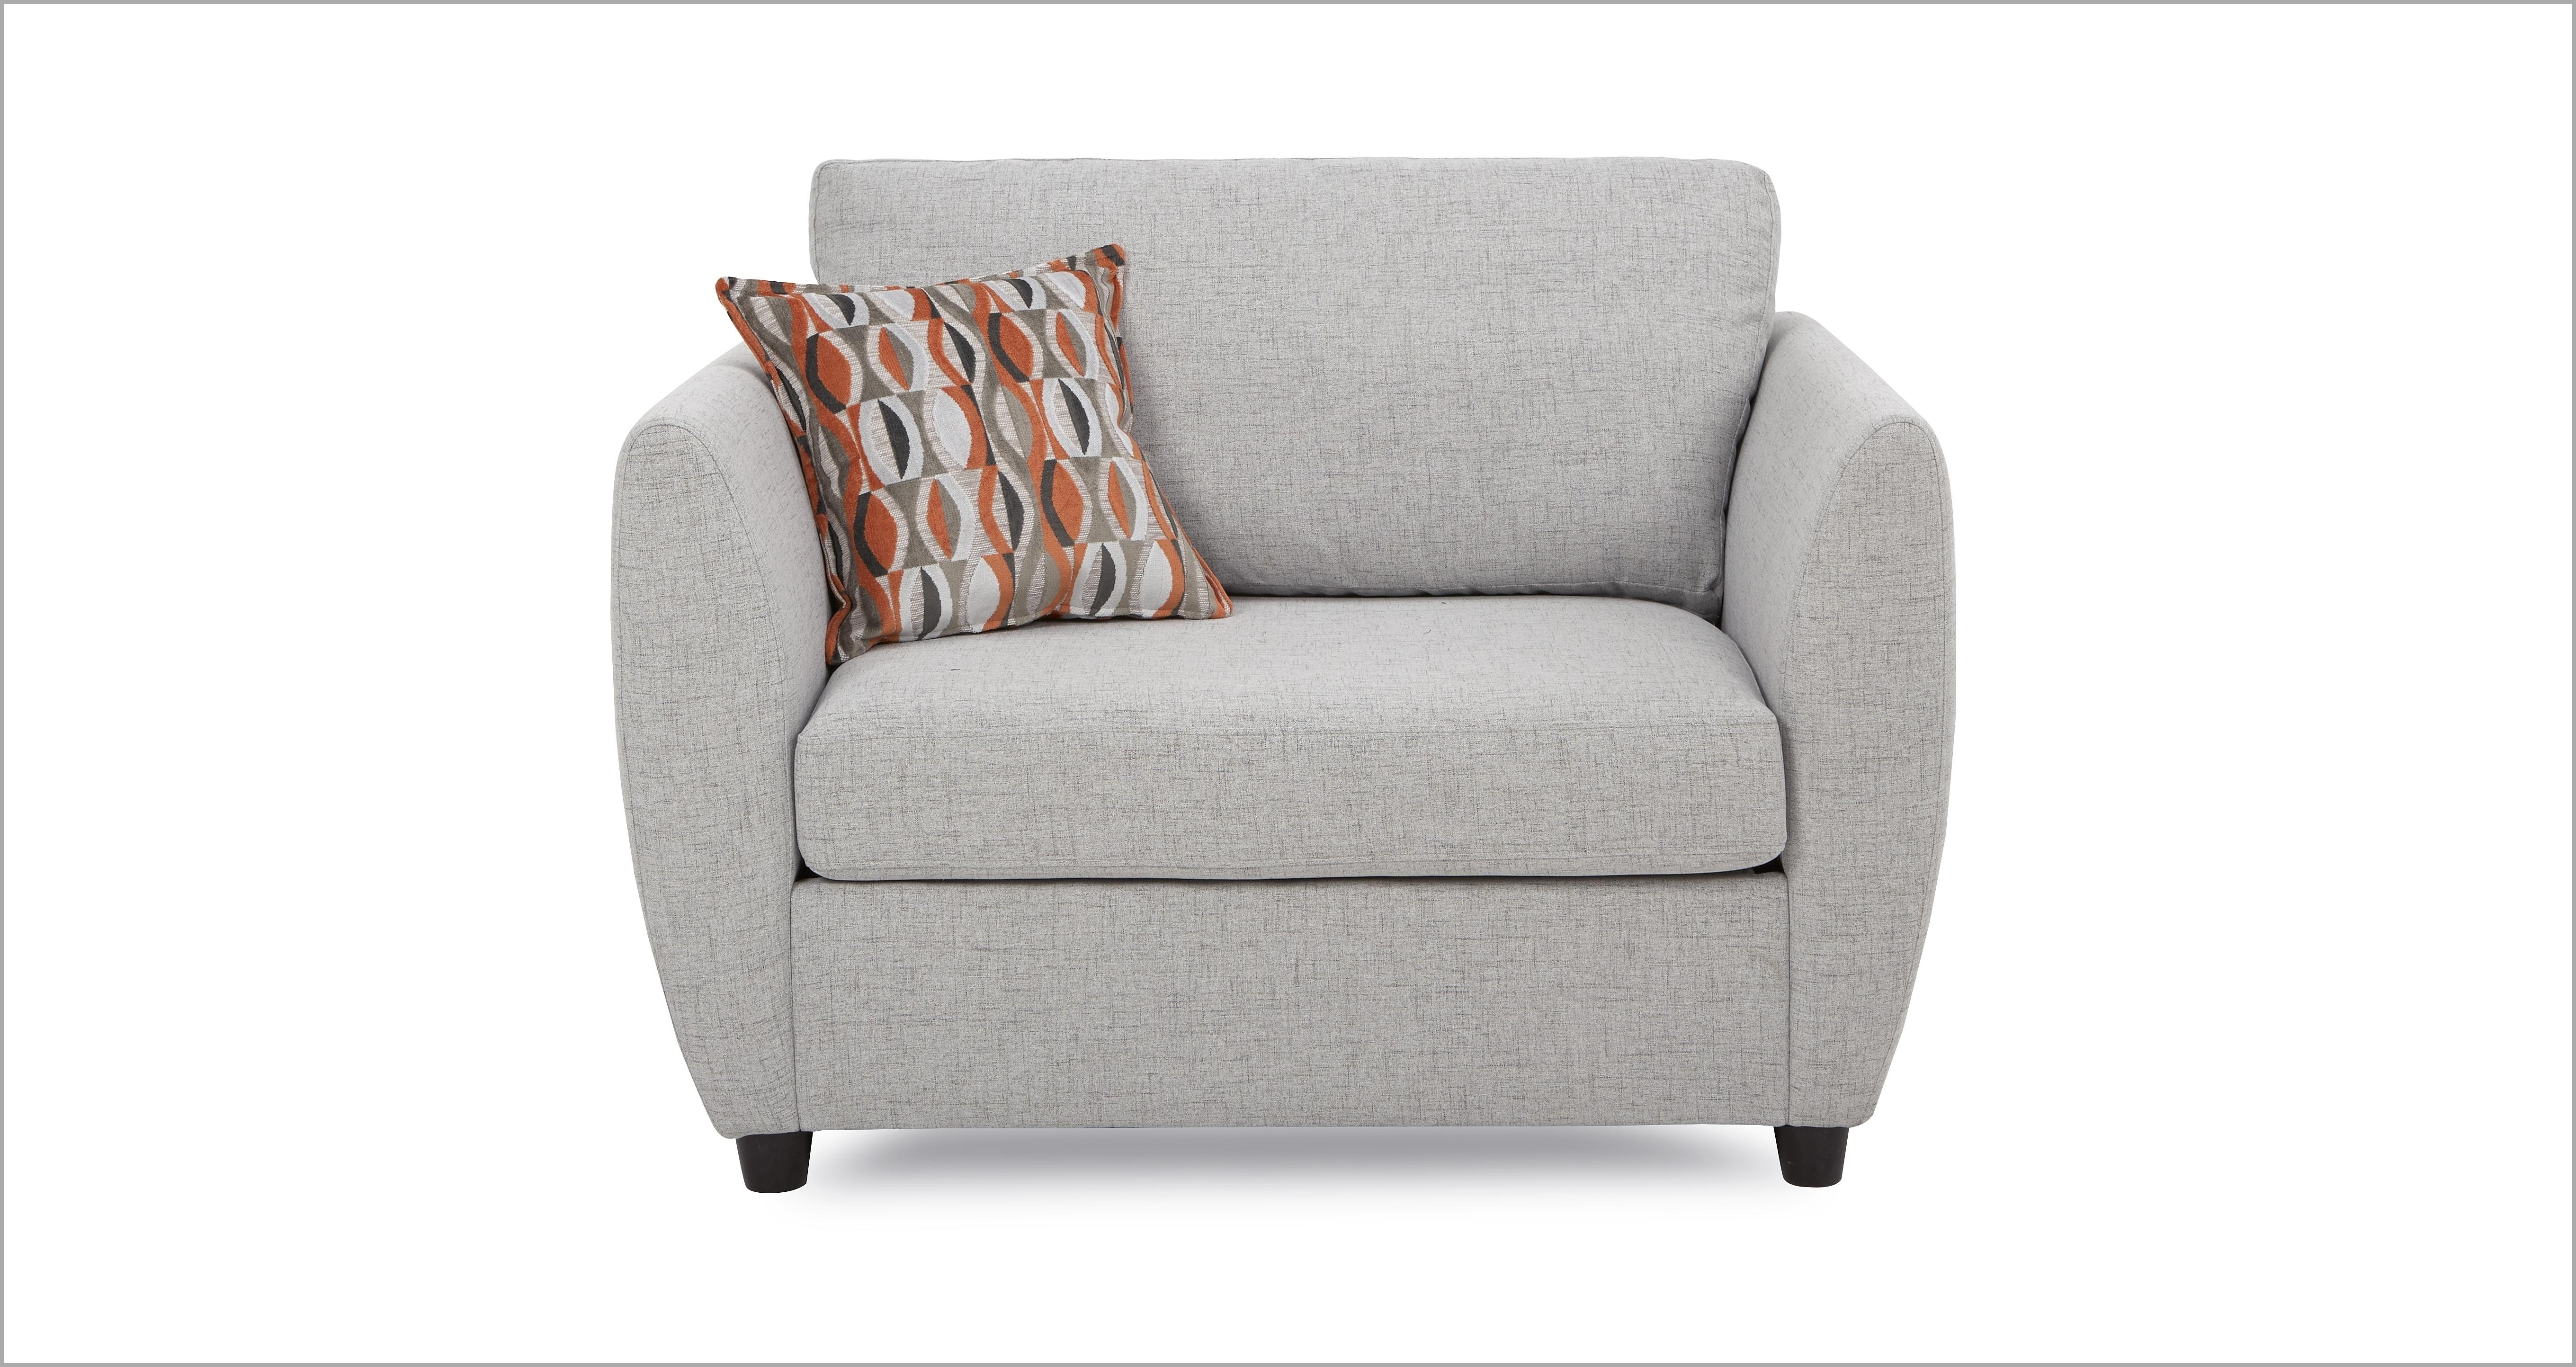 Sofa : Cheap 2 Seater Sofa Bed Sofa Bed Offers Corner Sofa Bed Uk with Cheap Single Sofas (Image 7 of 10)